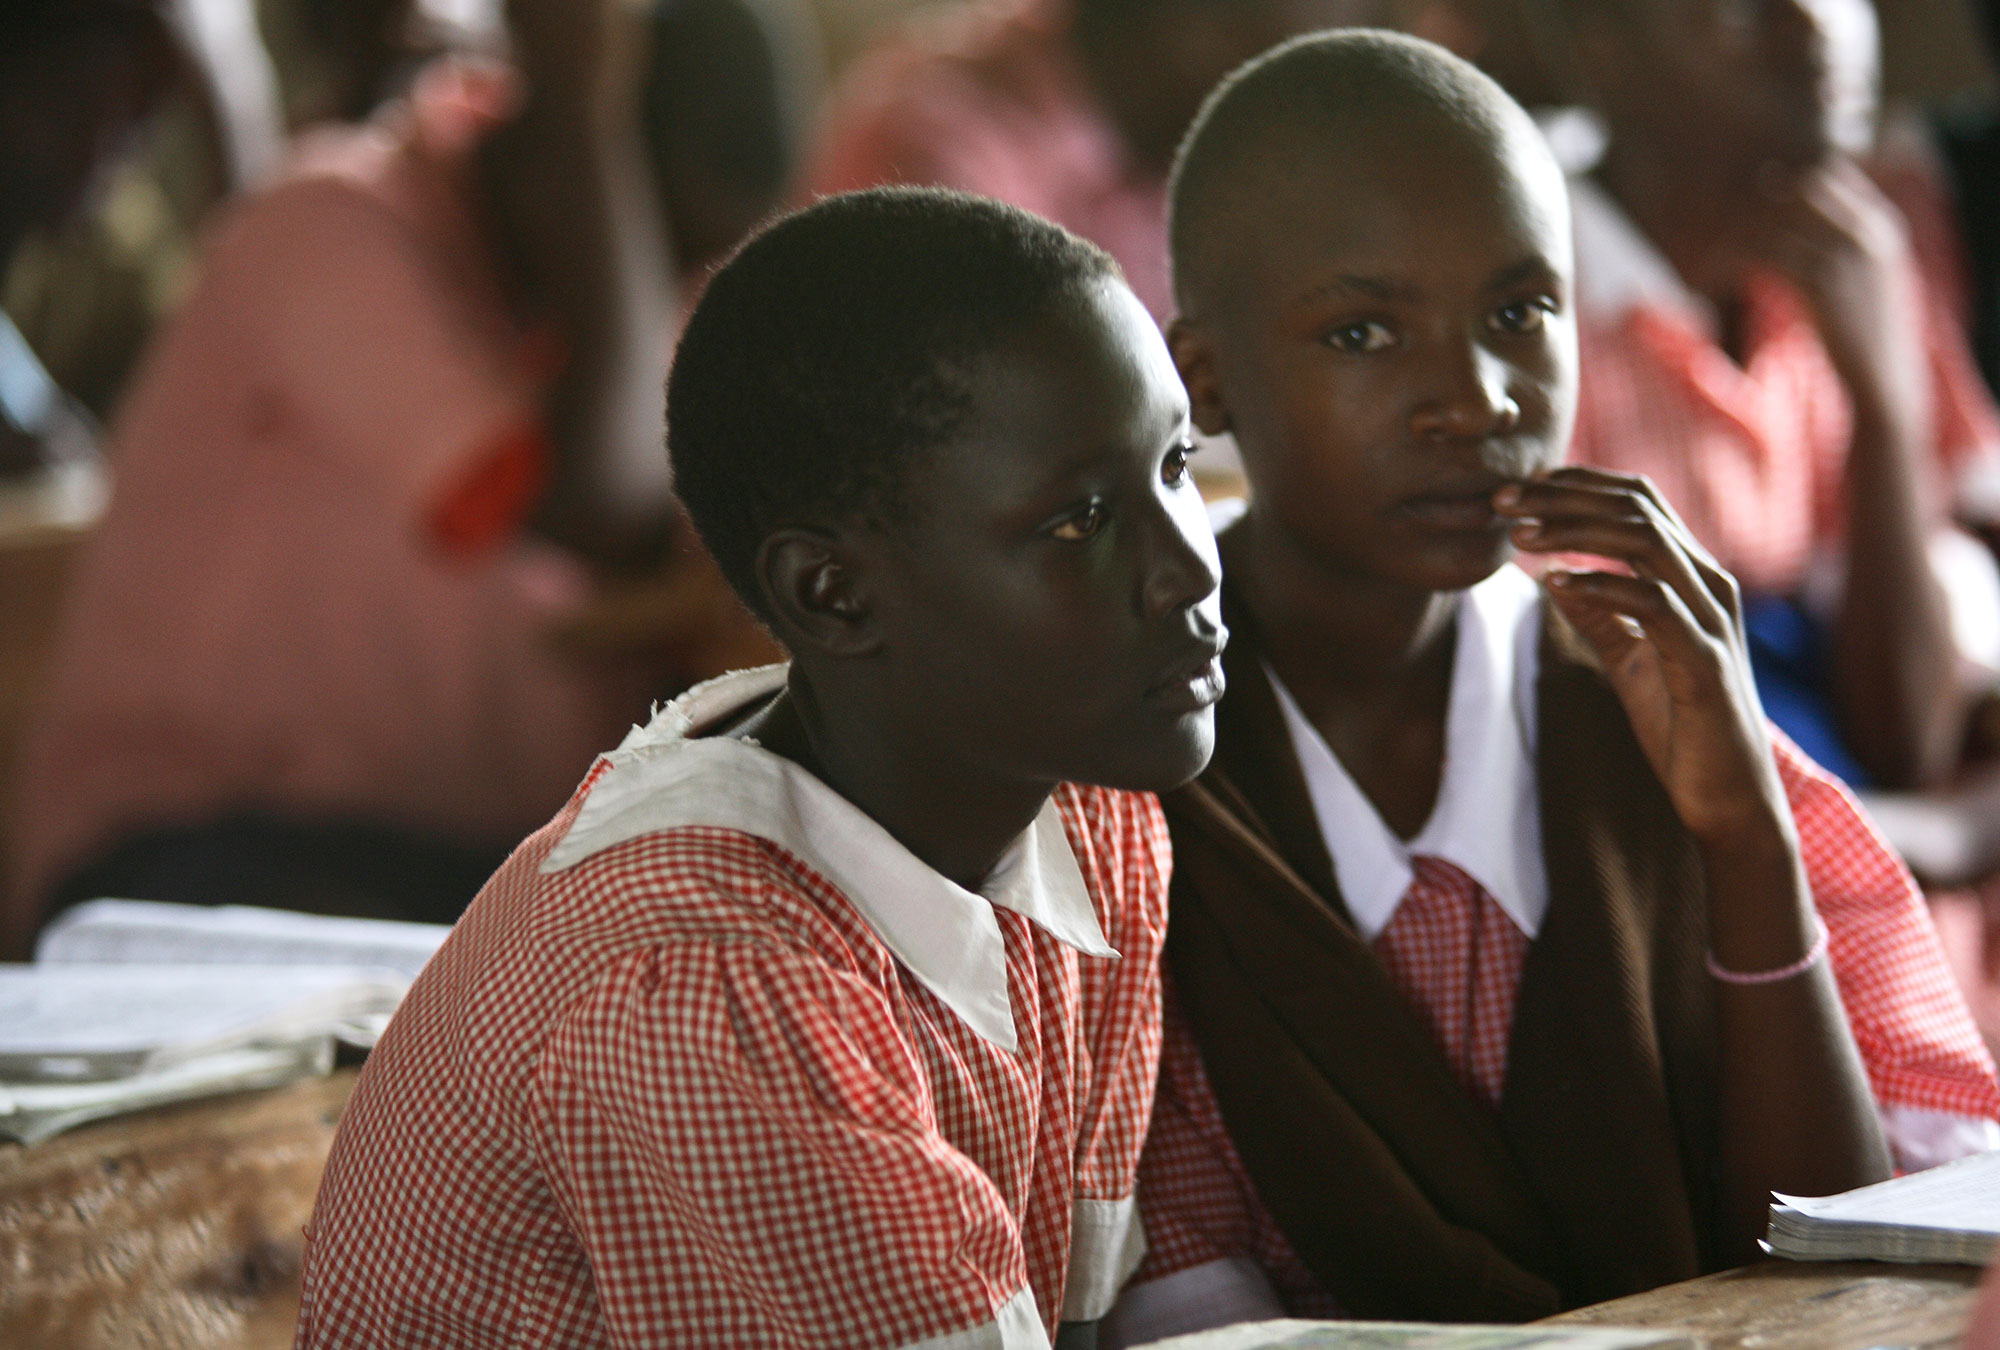 Preventing Hiv And Teen Pregnancy In Kenya The Roles Of